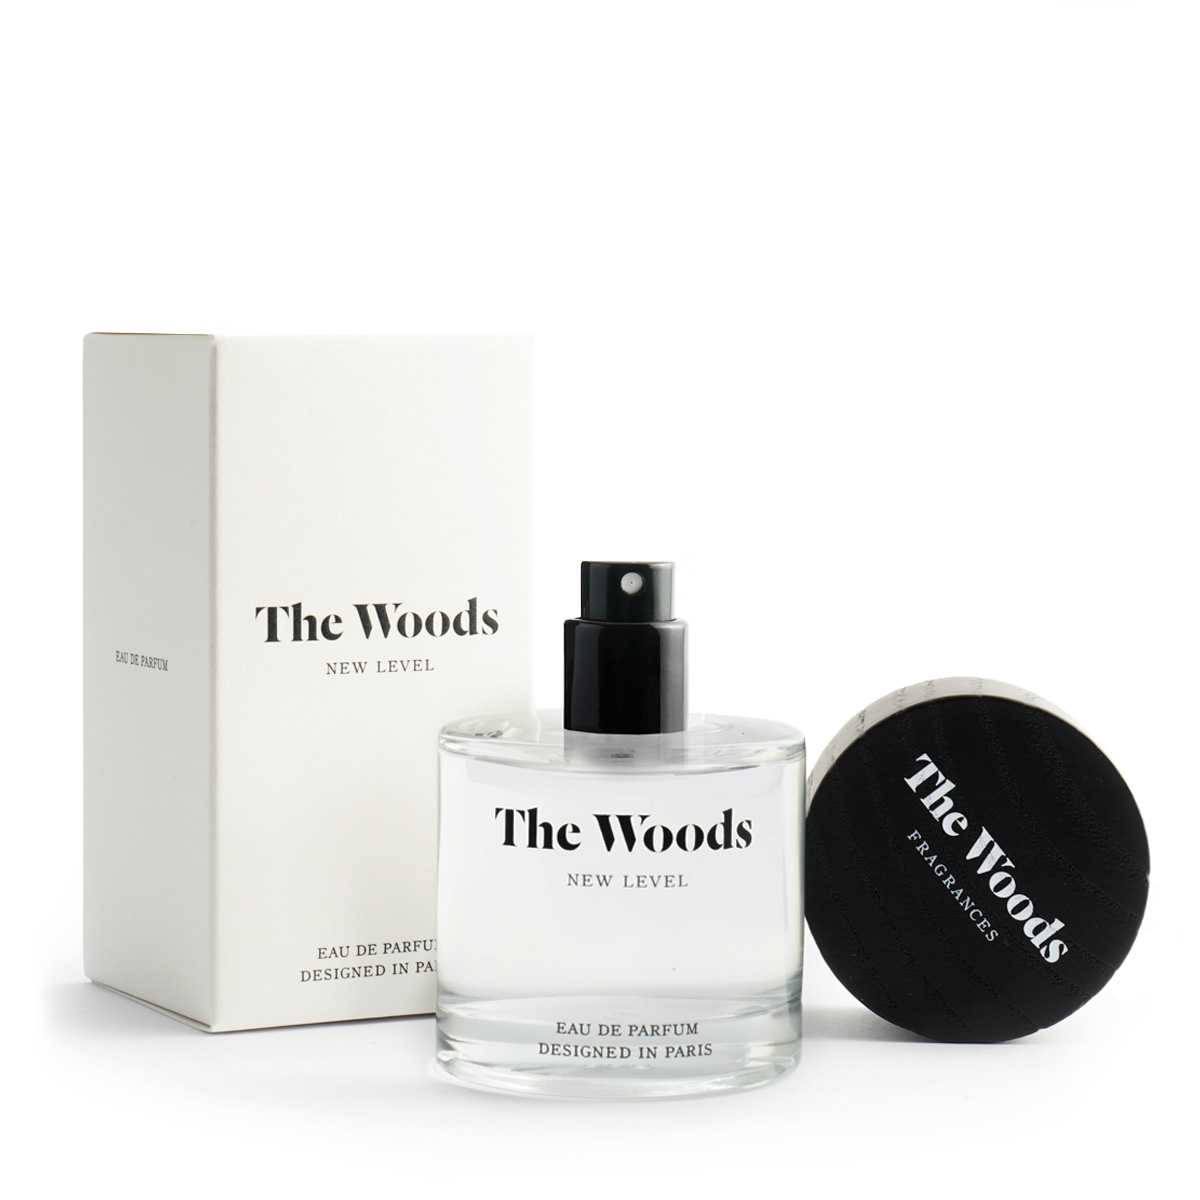 The Woods · New Level